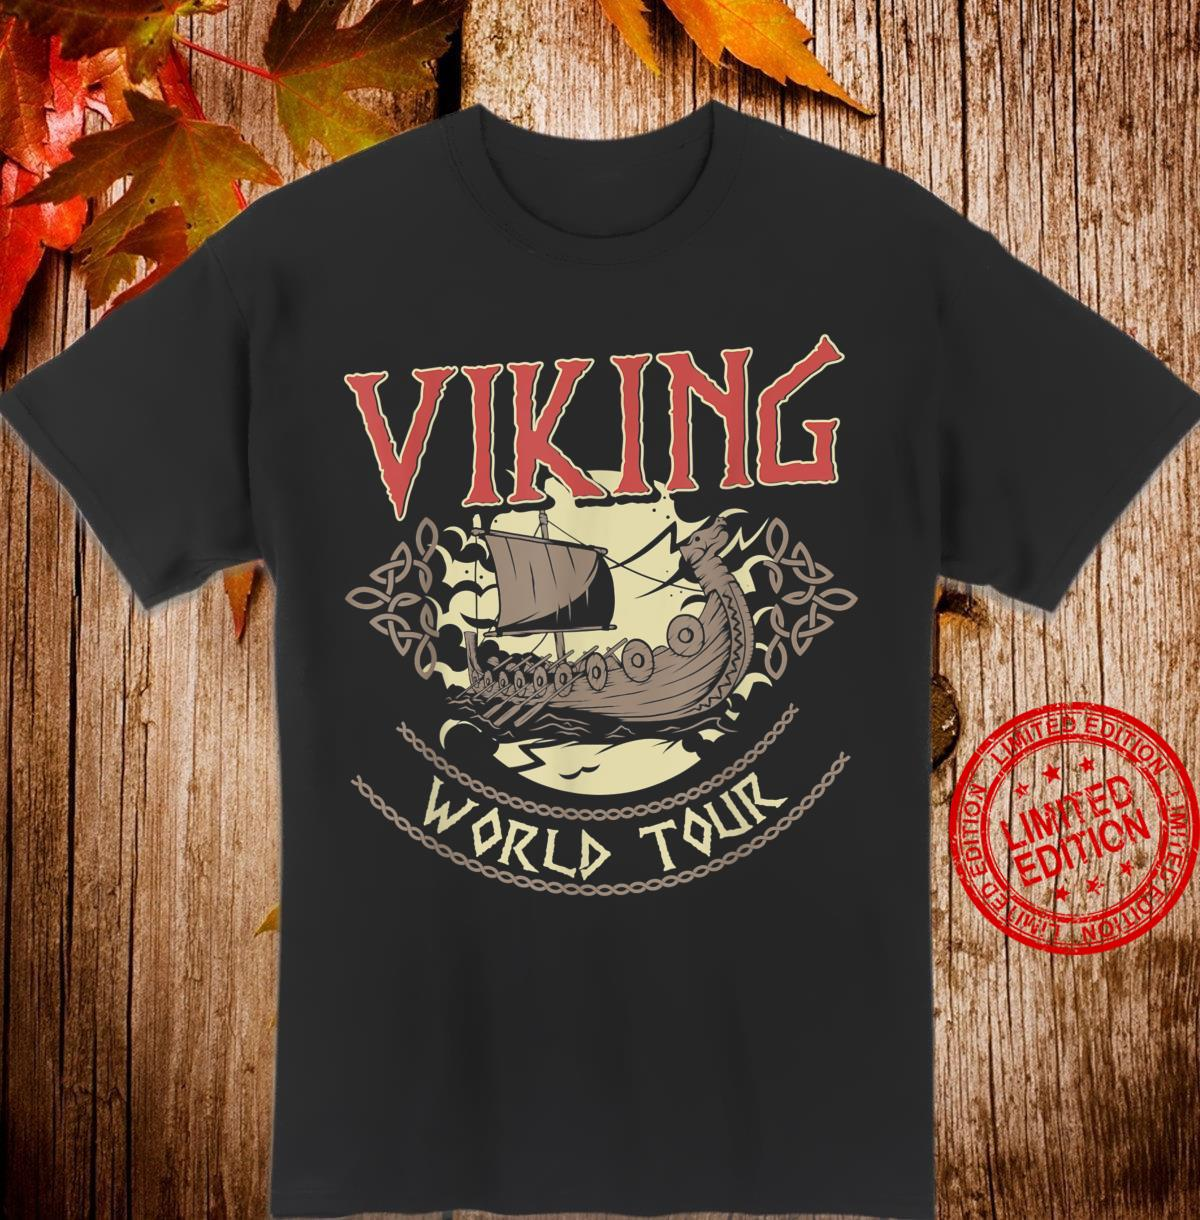 Viking World Tour Design for a Vikings Shirt